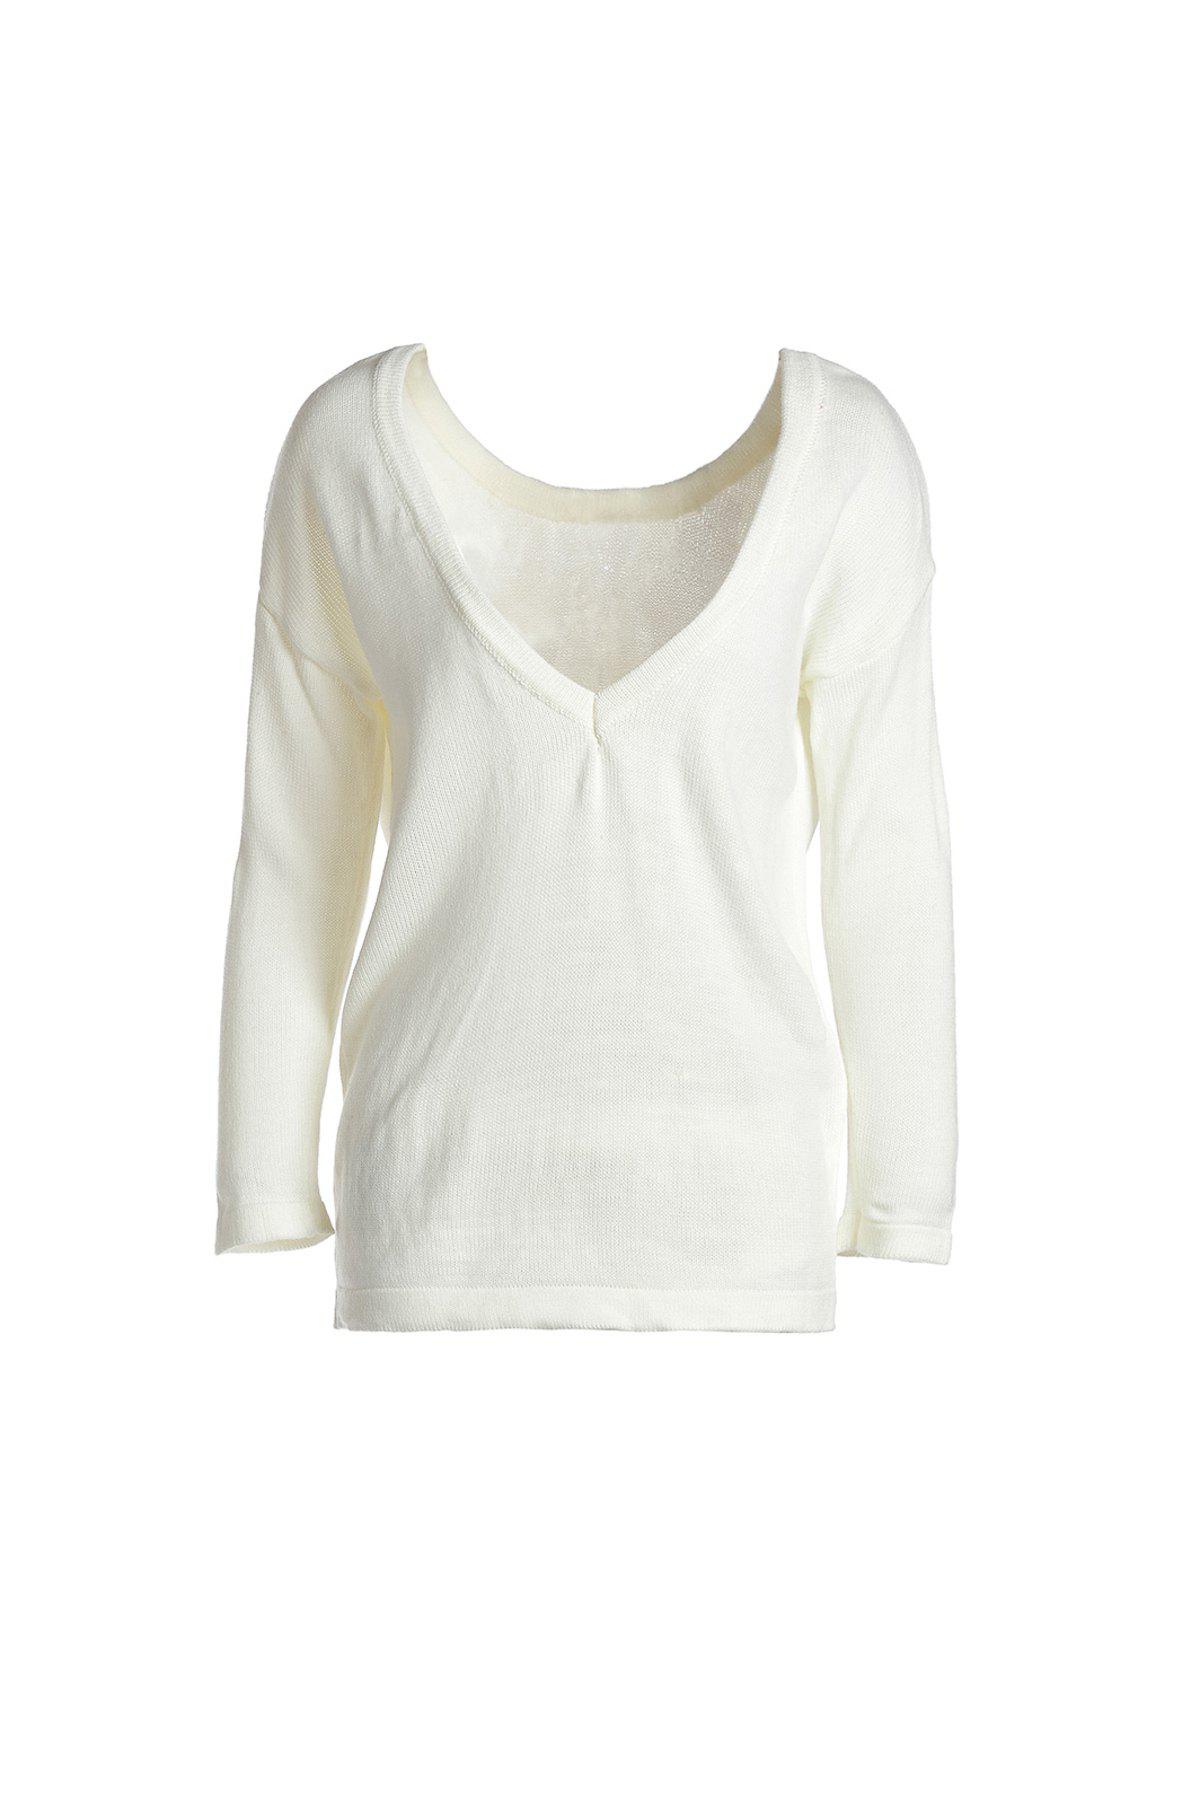 Cheap Stylish Round Neck Long Sleeve Backless Loose-Fitting Women's Knitwear